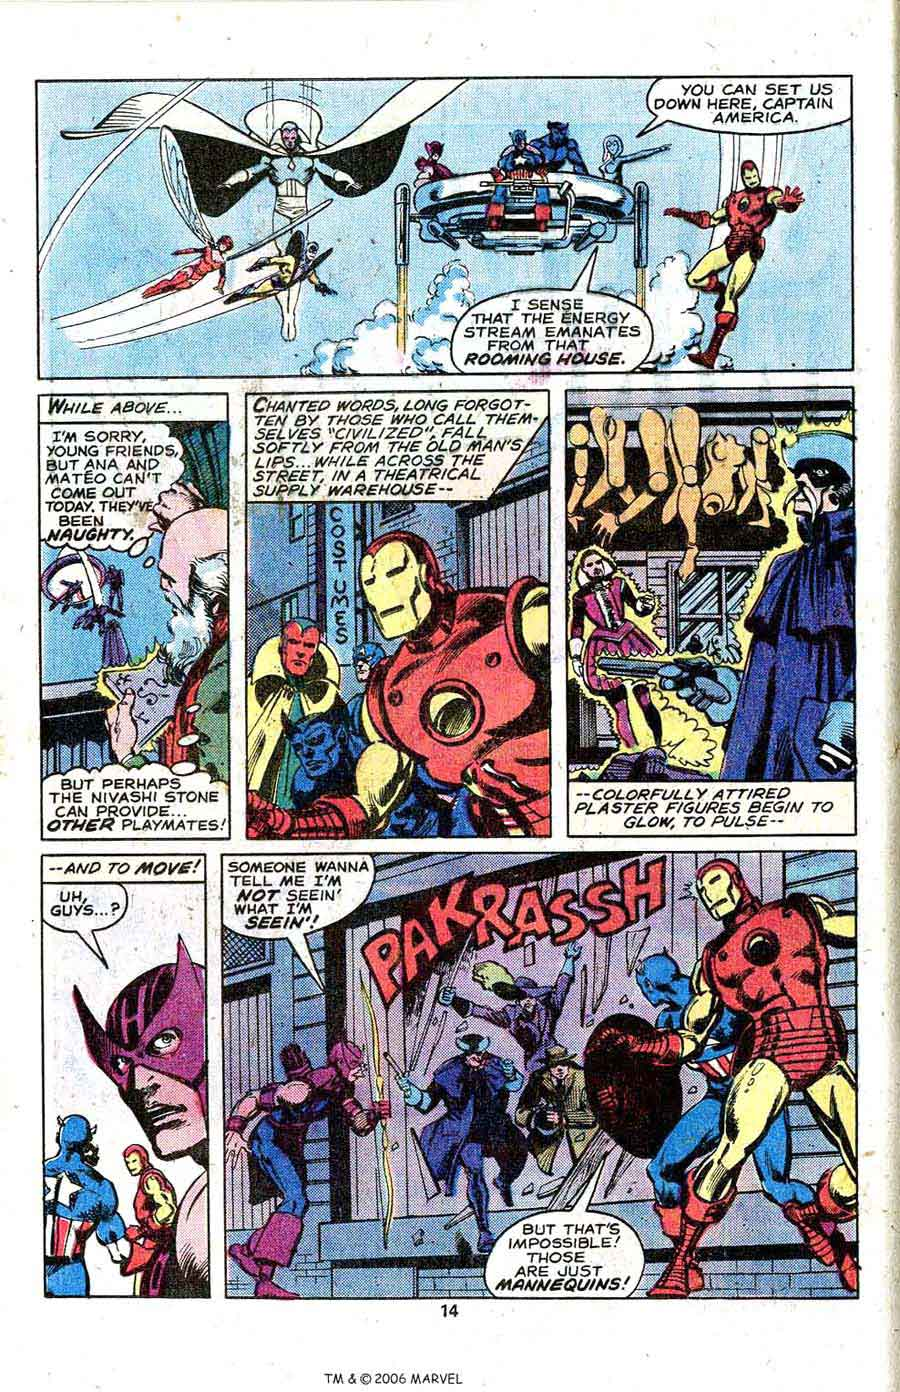 Avengers #182 marvel 1970s bronze age comic book page art by John Byrne